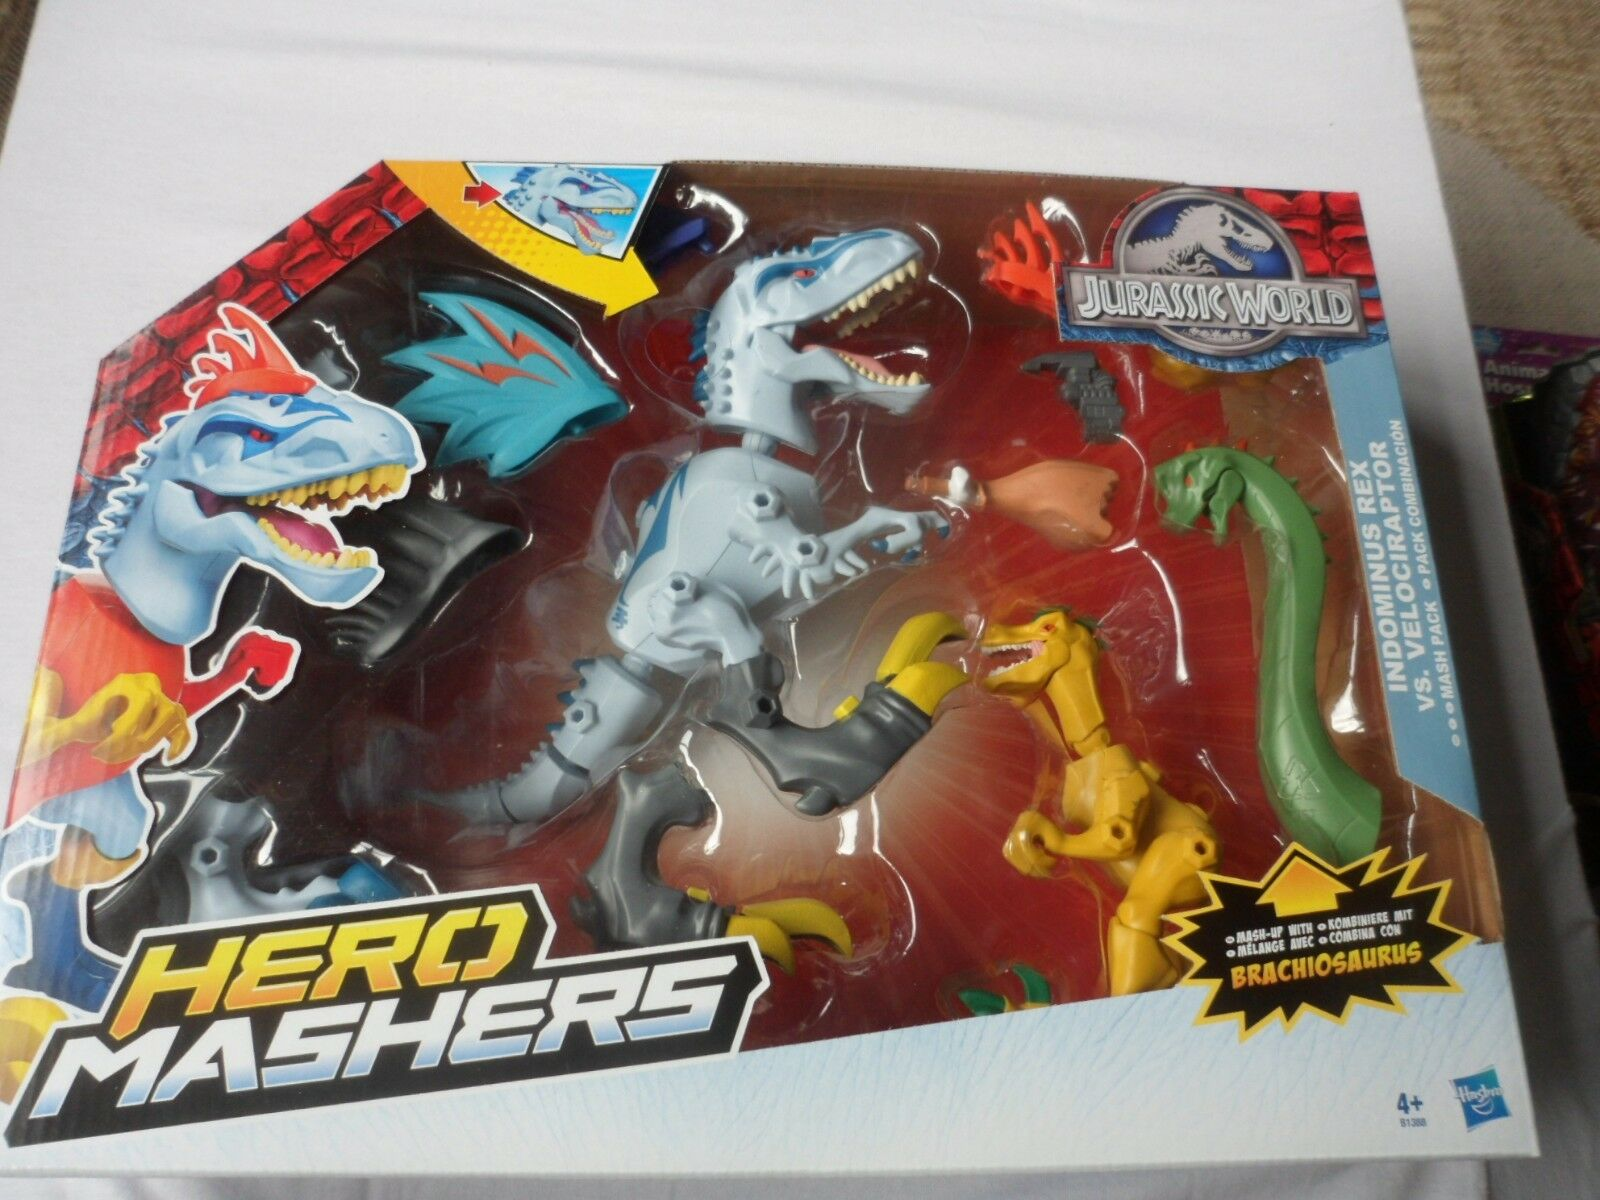 JURASSIC WORLD HERO MASHERS INDOMINUS REX VS. VELOCIRAPTOR